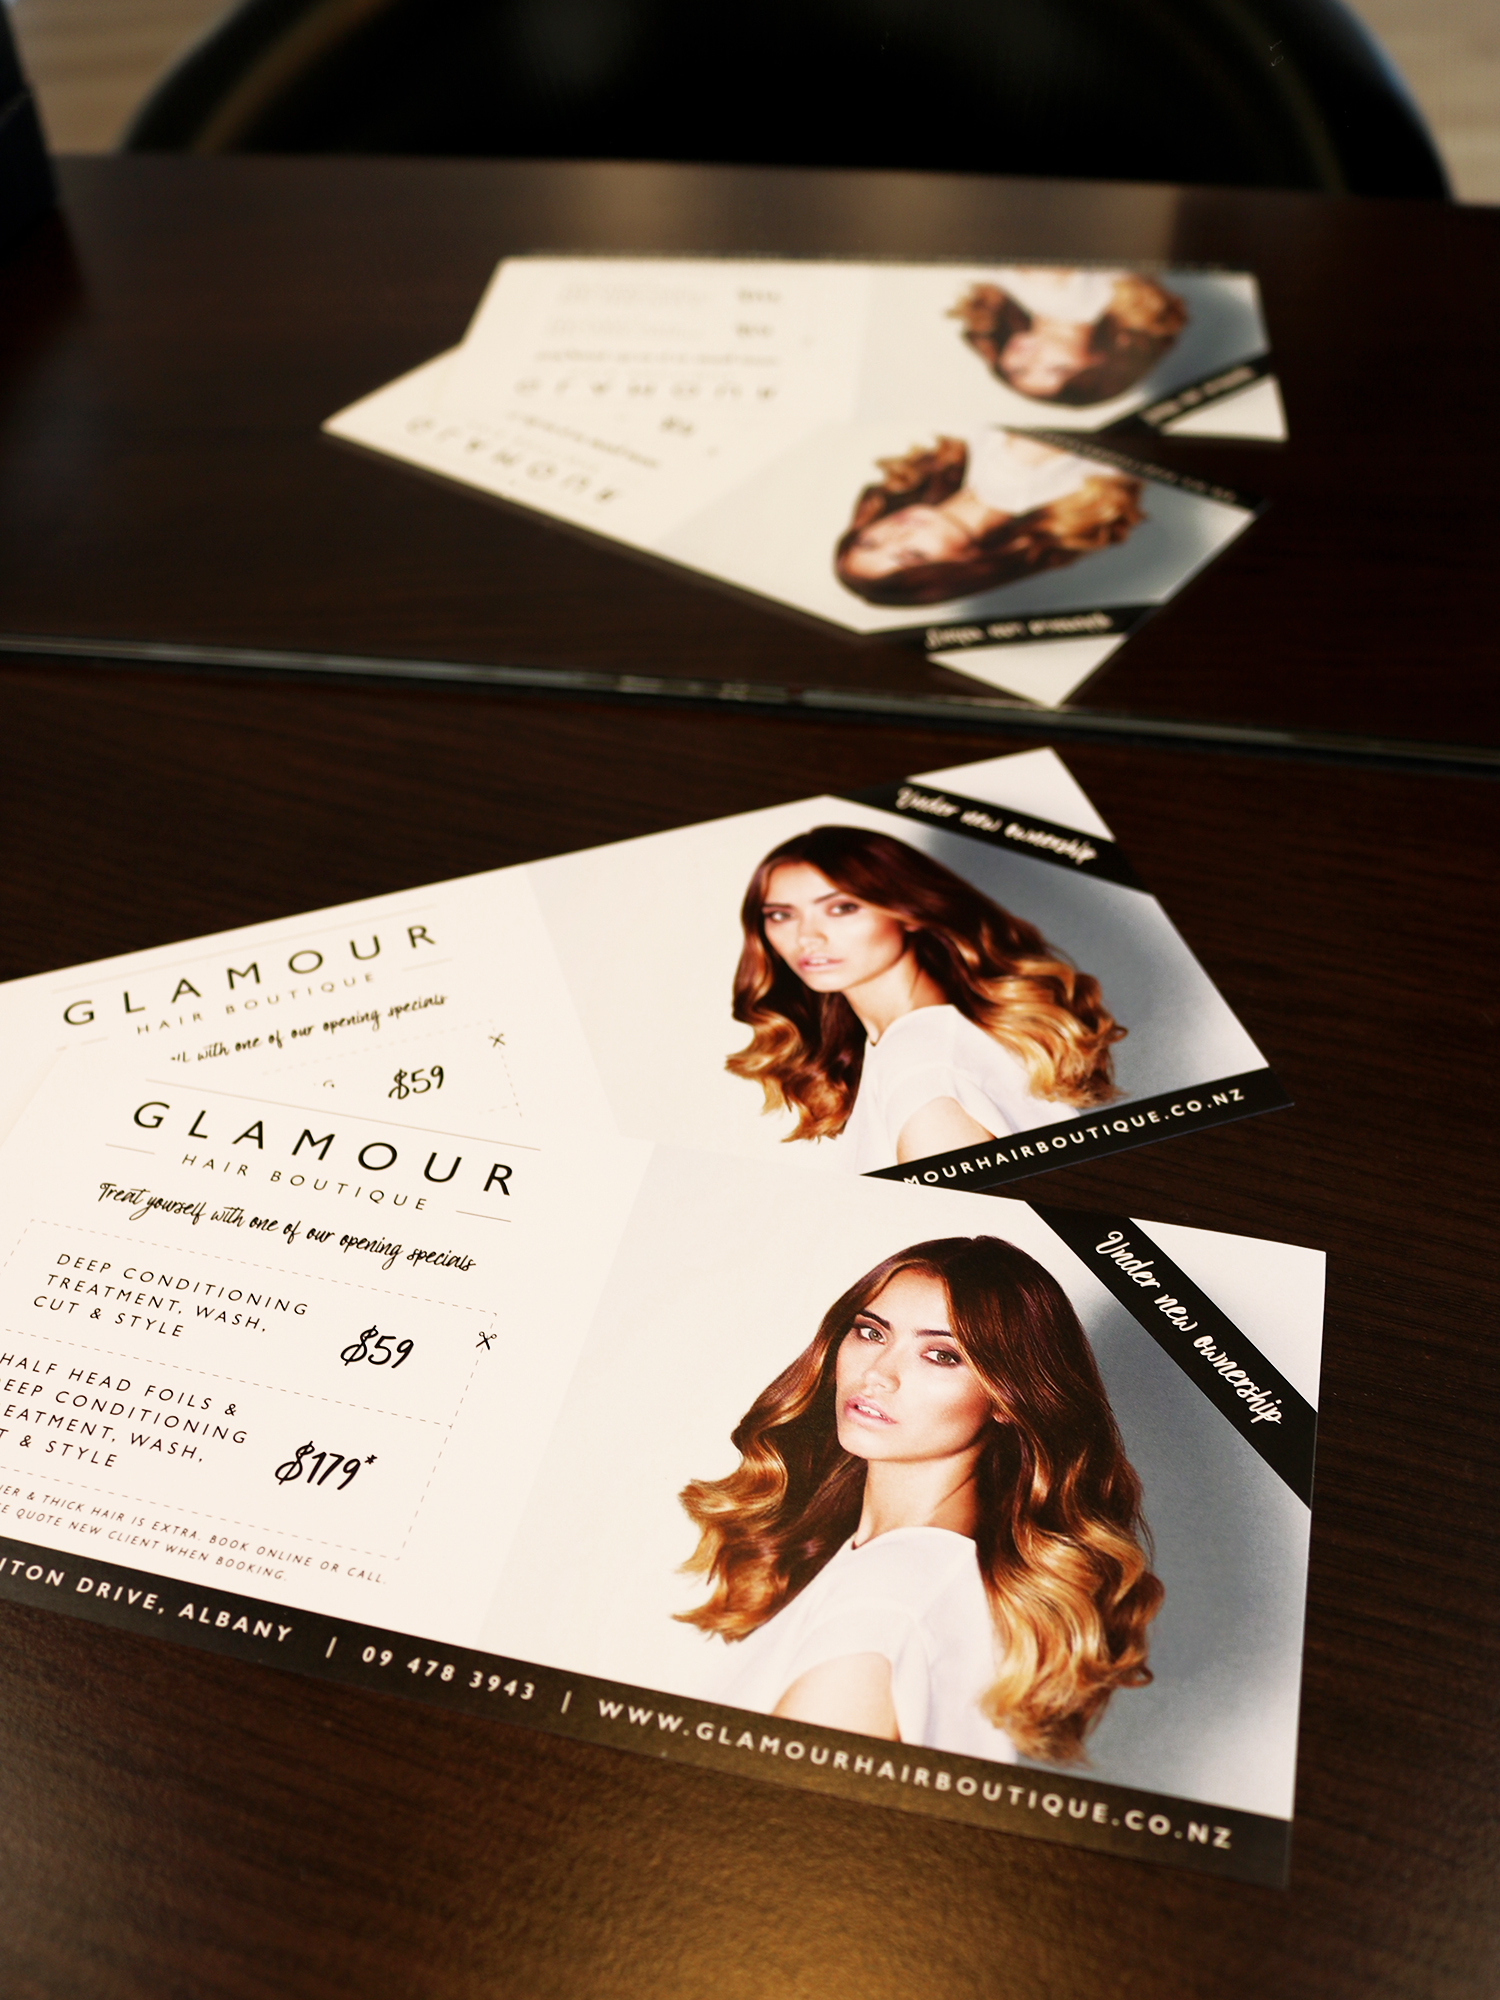 6 glamour-hair-boutique-dle-flyer-1.jpg